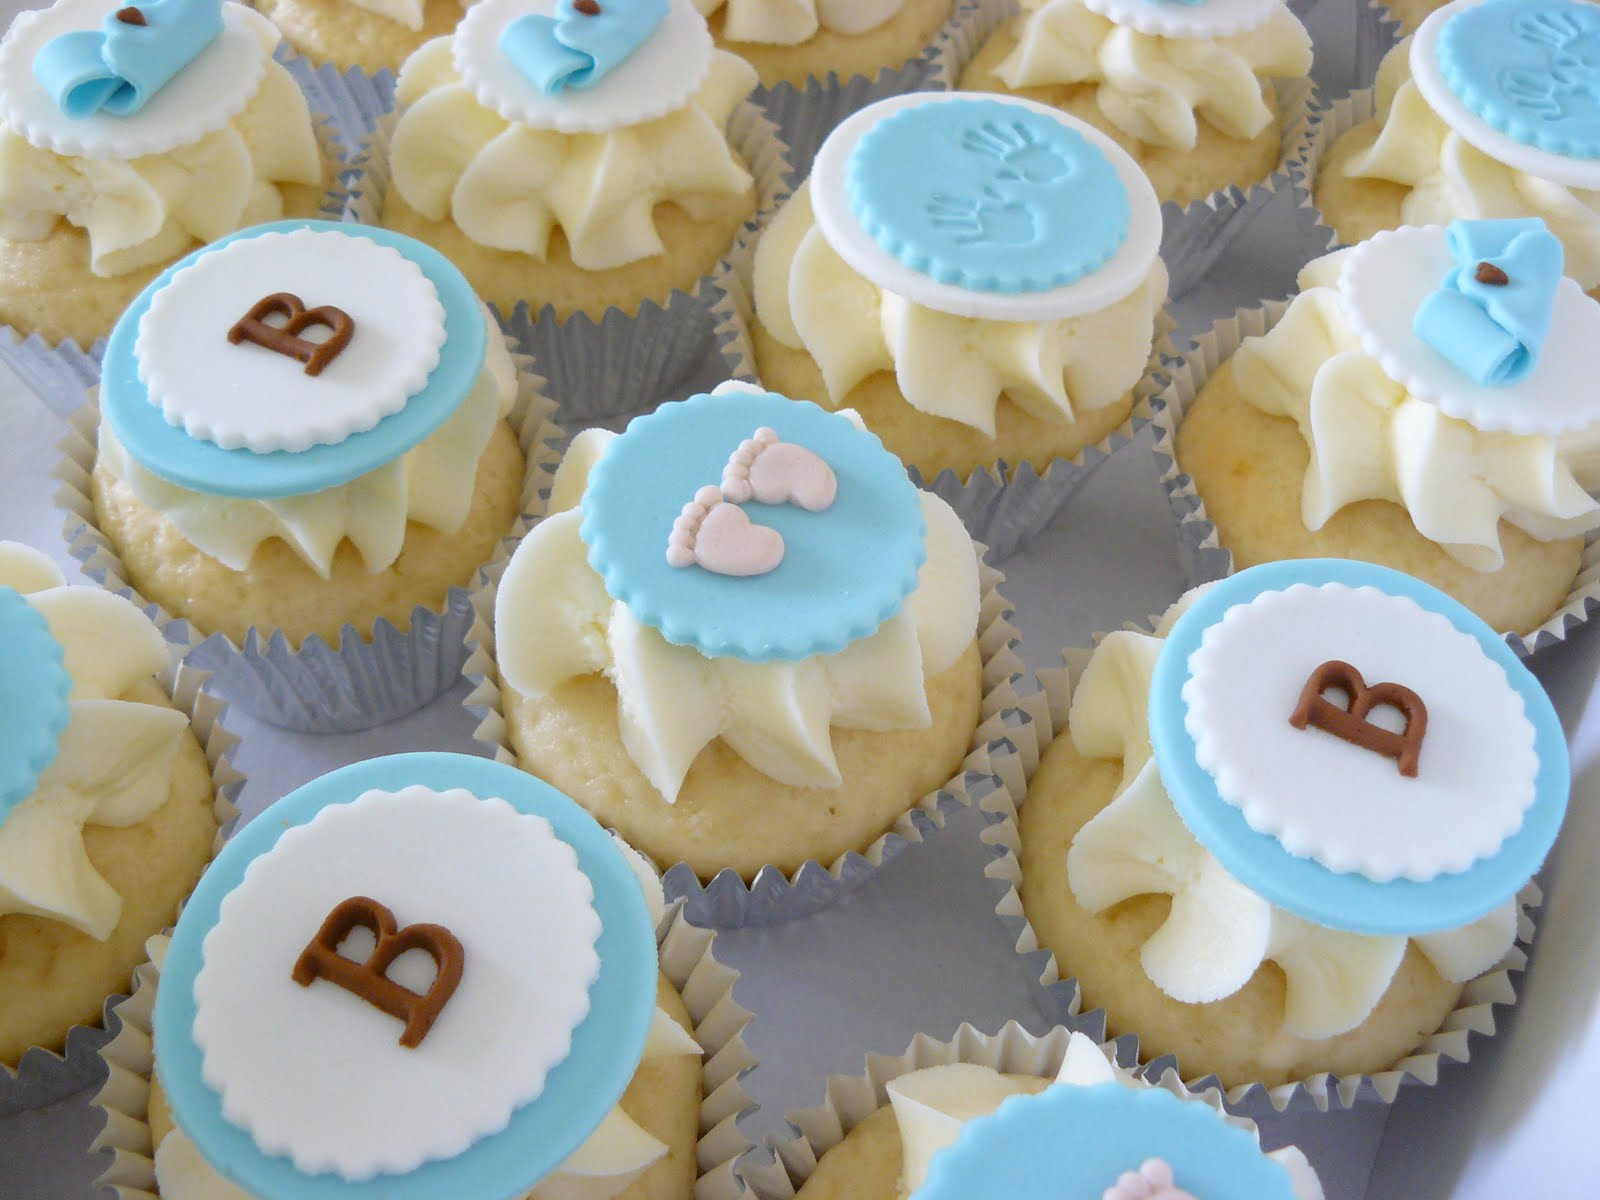 Uitzonderlijk 70 Baby Shower Cakes and Cupcakes Ideas &GZ38